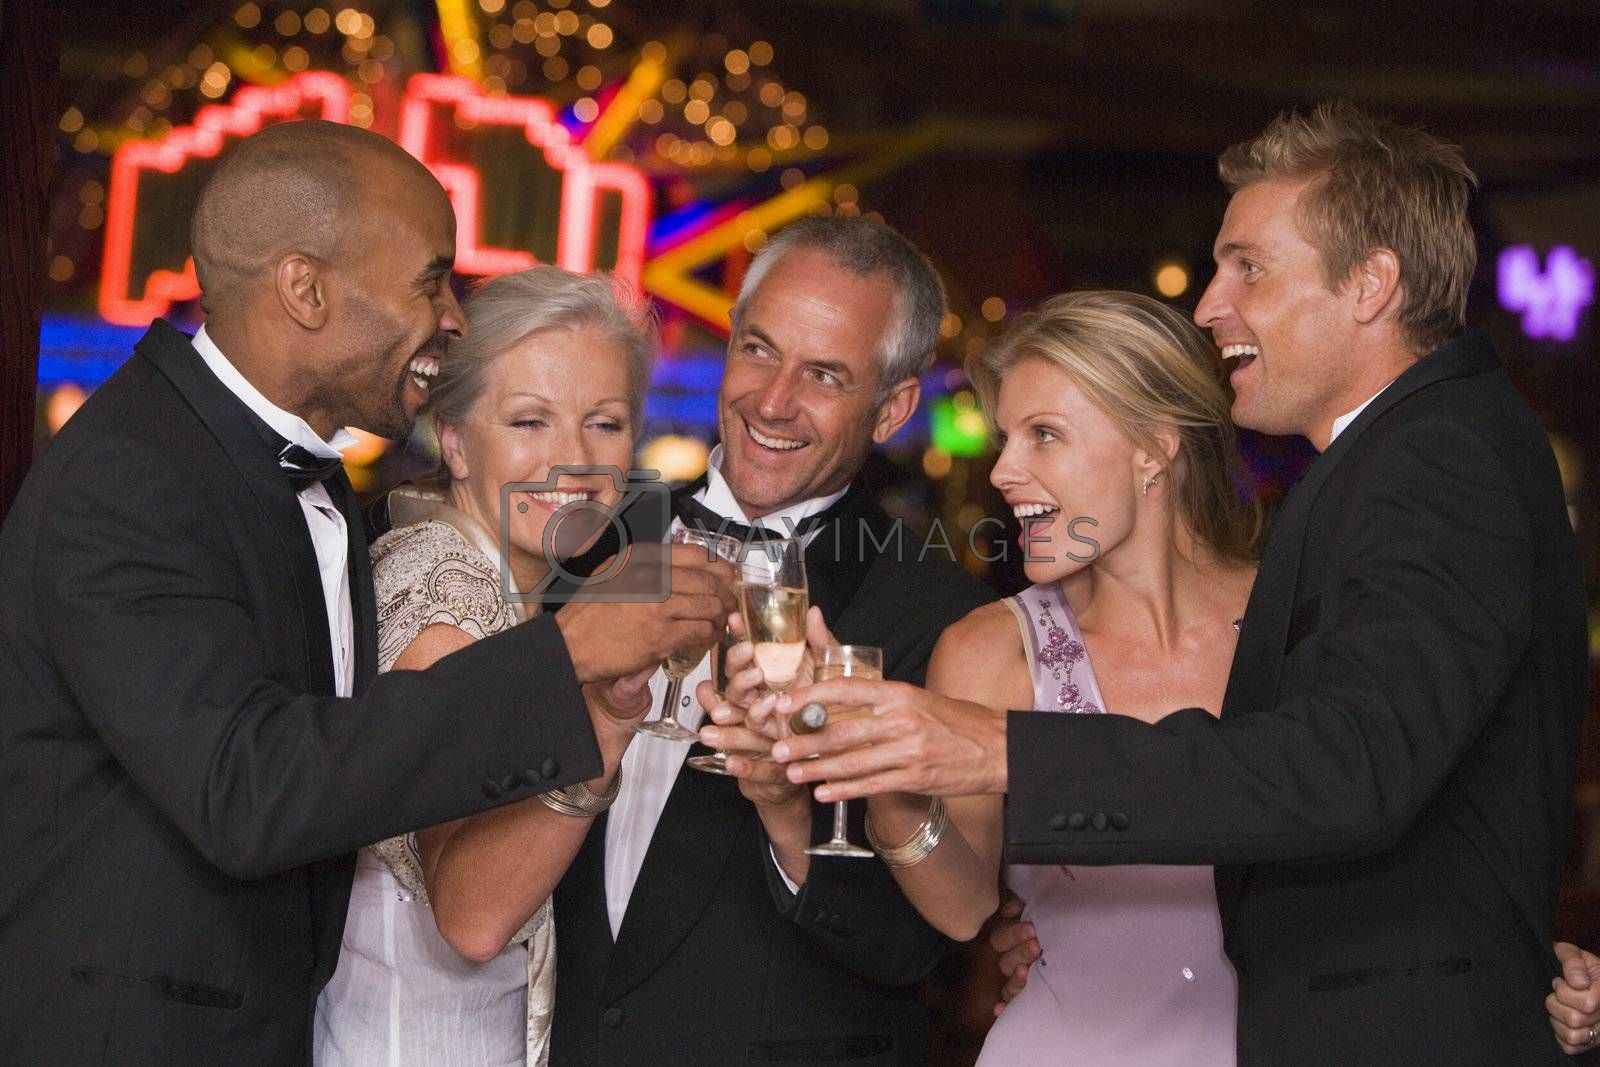 Five people in casino with champagne smiling